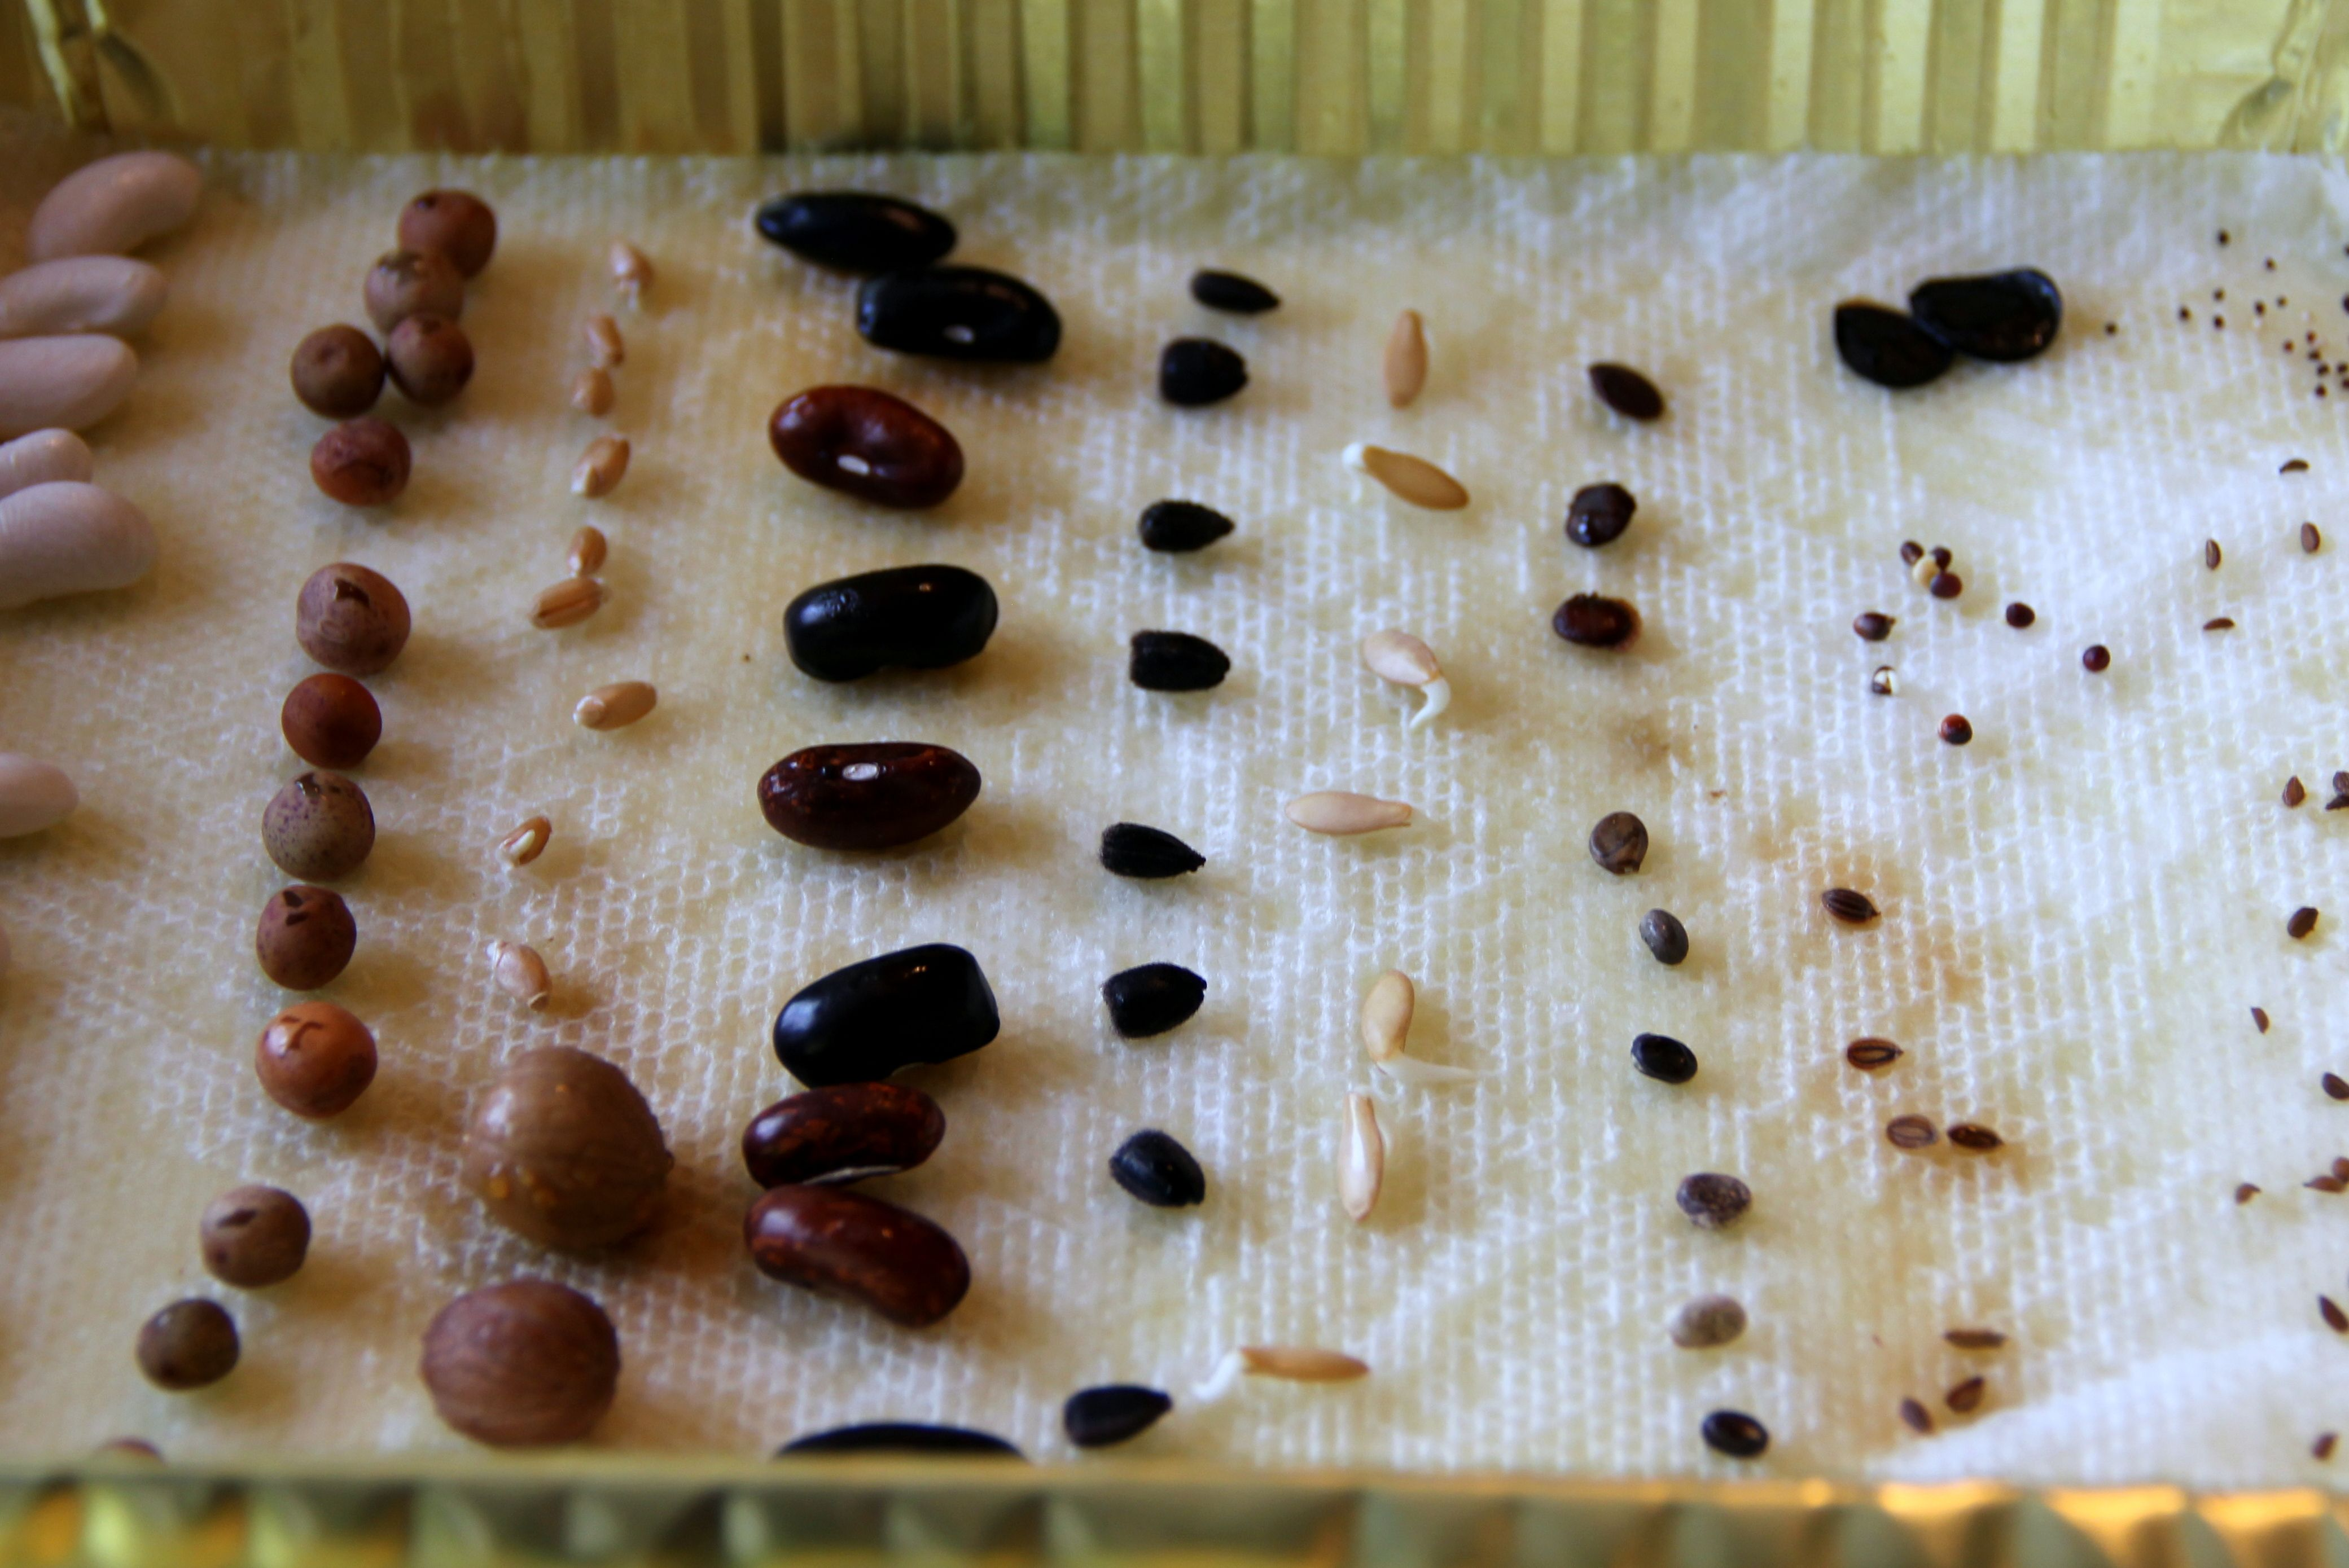 Seed Sprouting Prediction Project